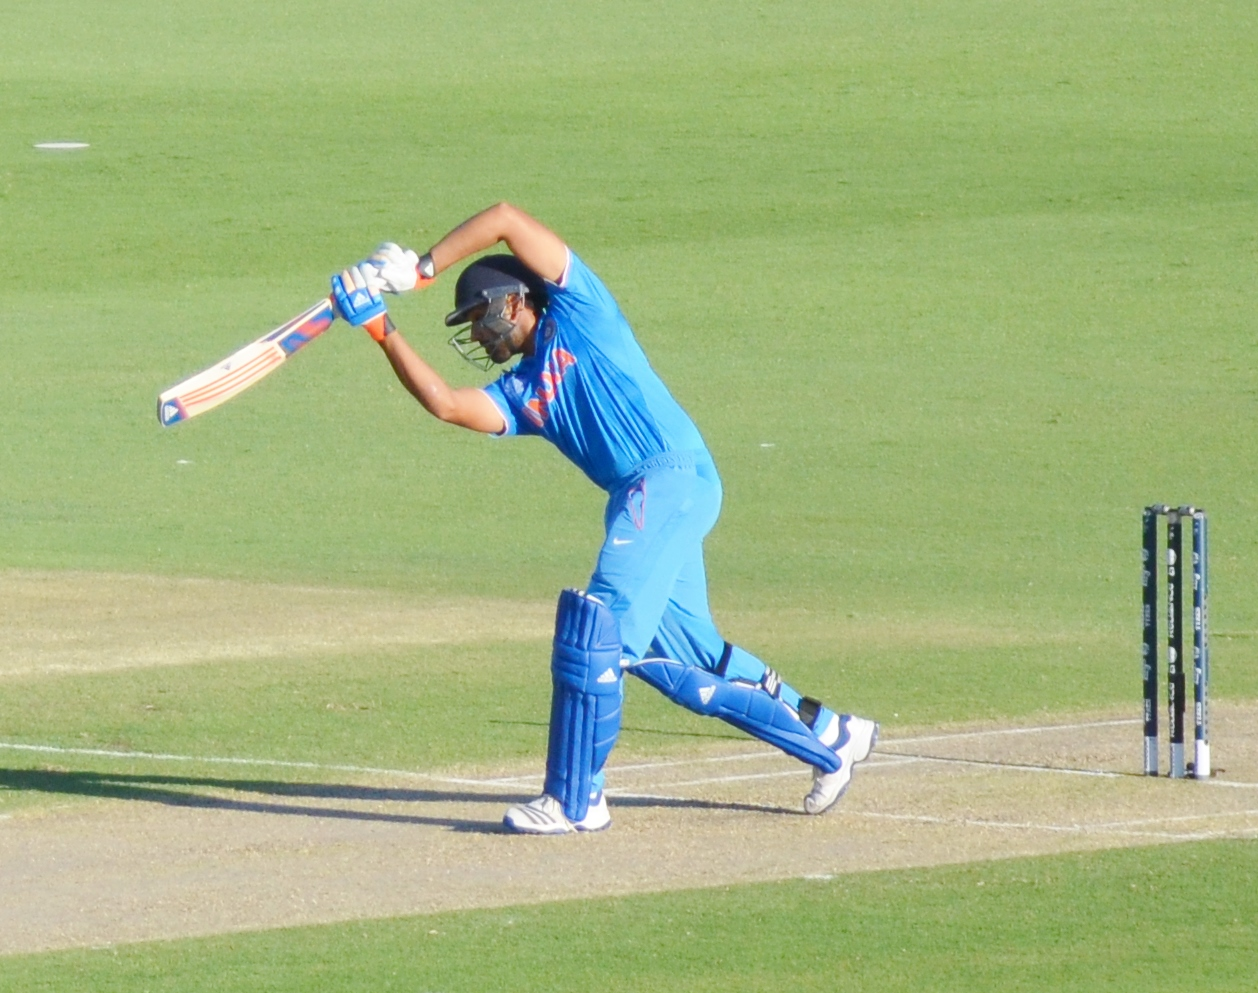 Twitter reactions on Rohit Sharma's fourth T20I century